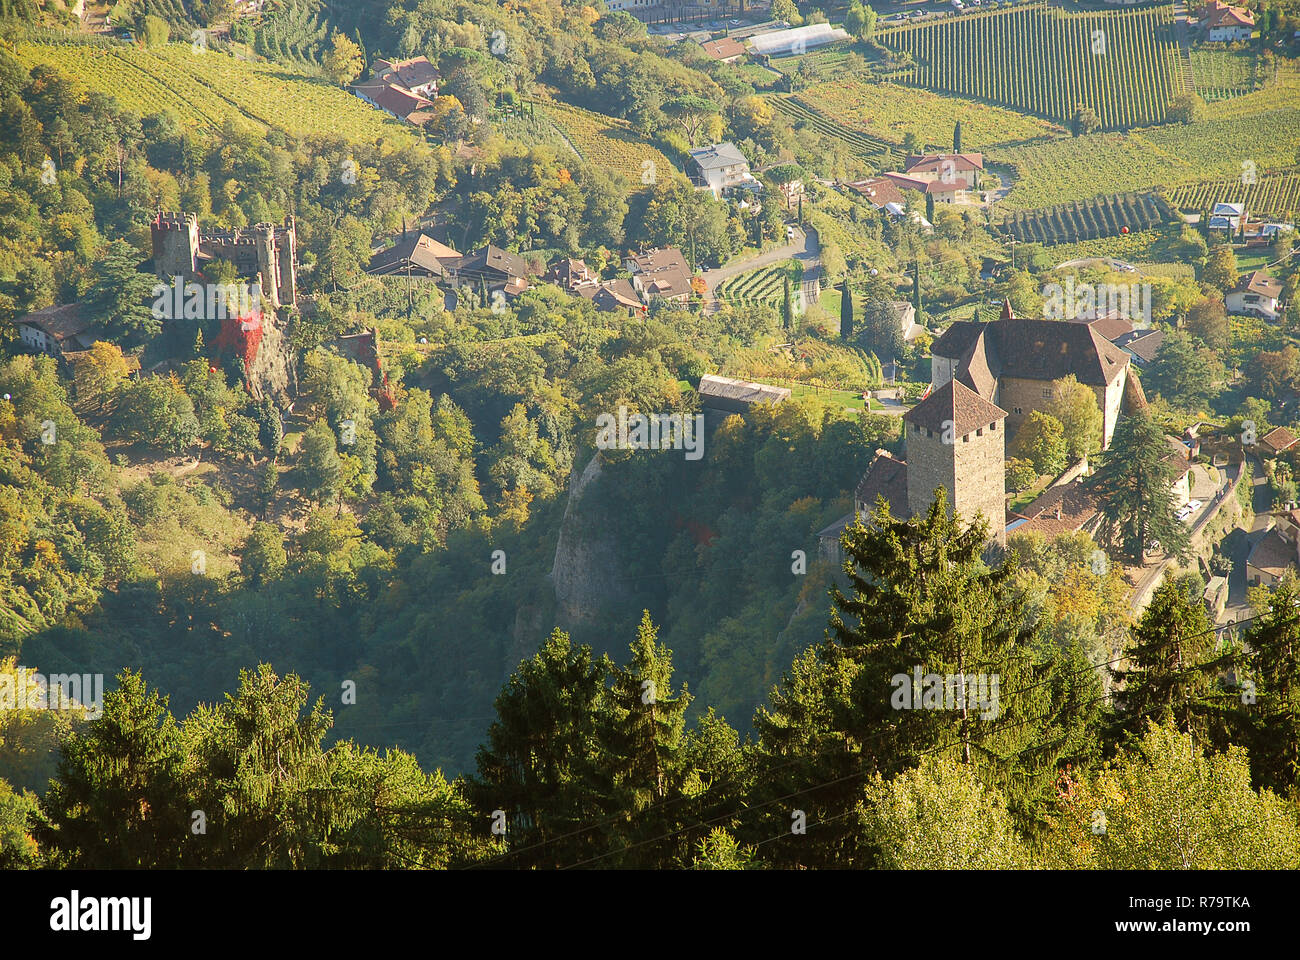 Aerial view of Tyrol Castle and Brunnenburg castle in Tirolo, South Tyrol, Italy. Tyrol Castle is home to the South Tyrolean Museum of Culture and Pro Stock Photo